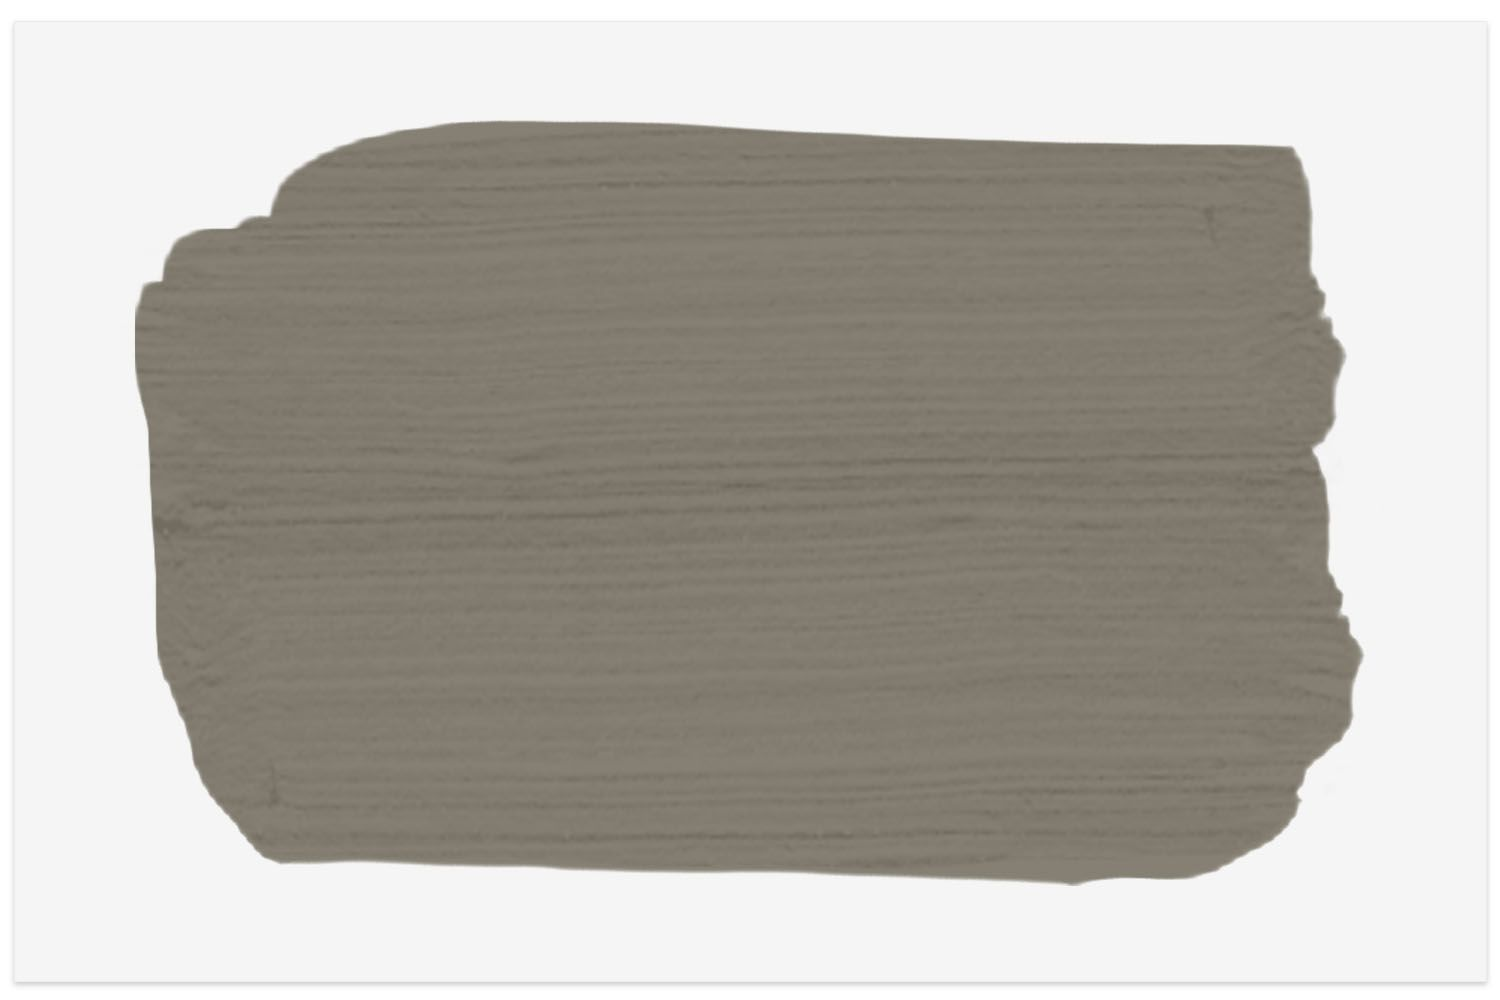 Clare Shade paint swatch